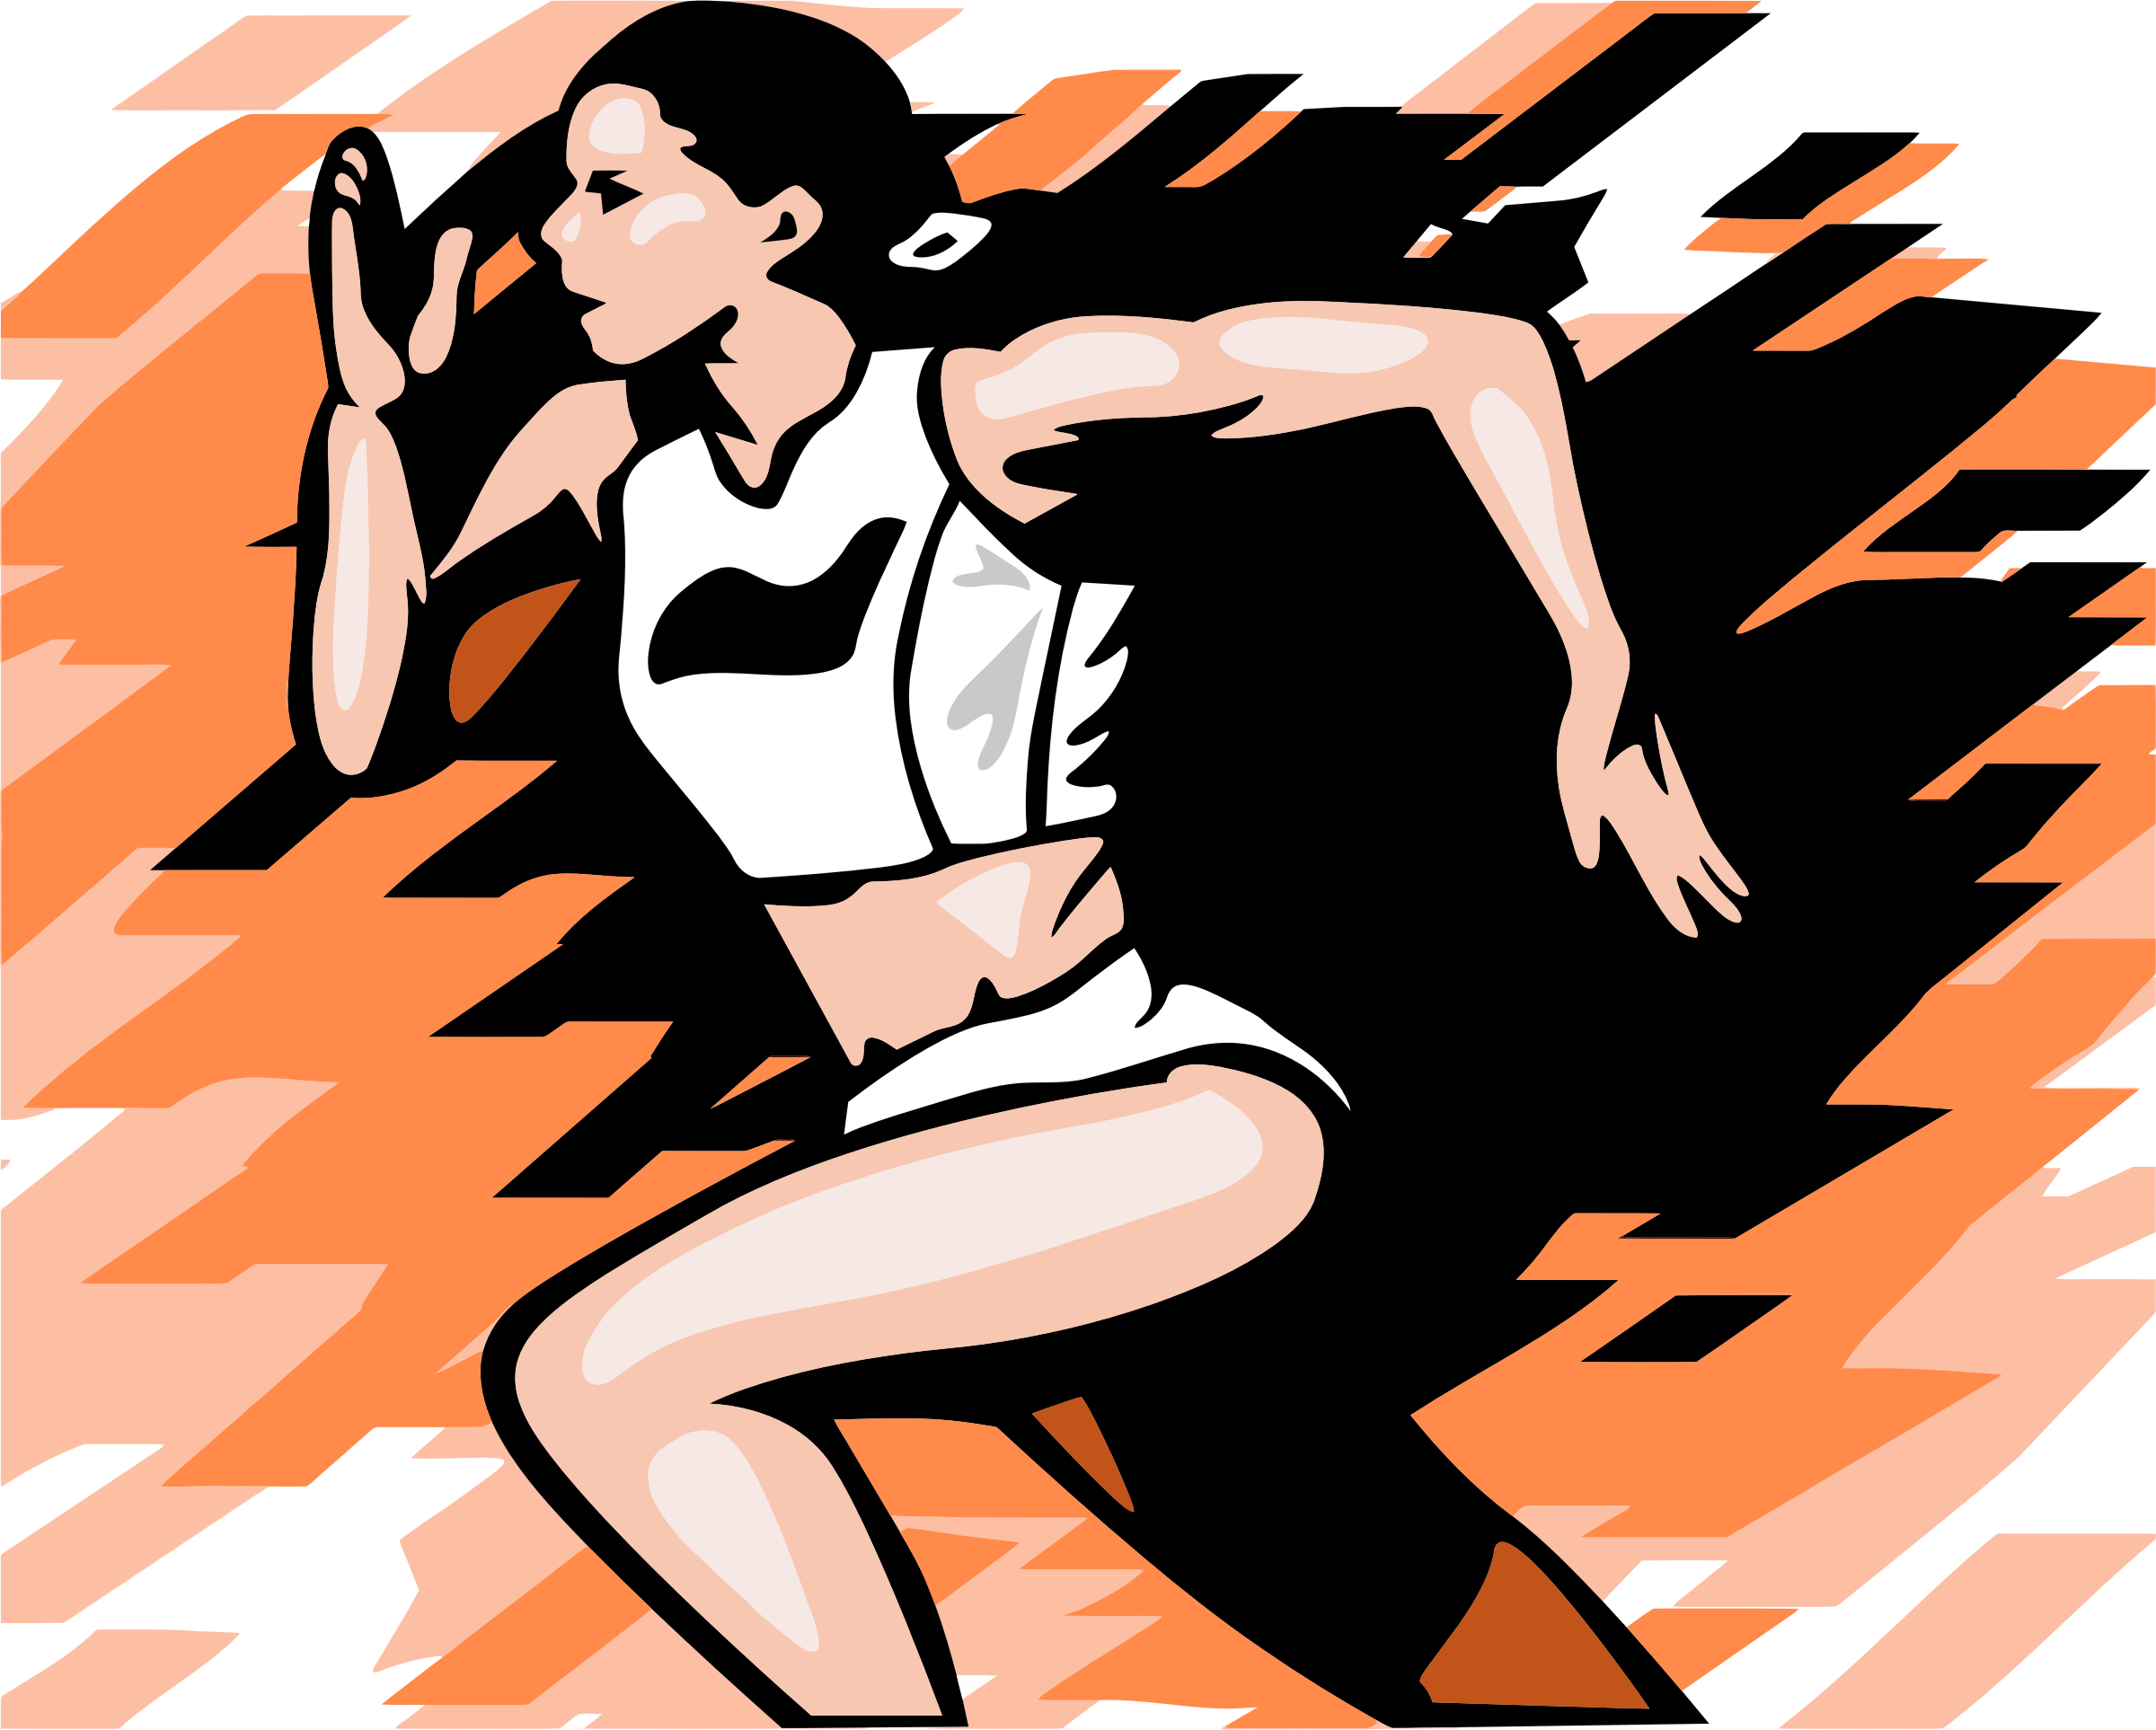 Female Runner Illustration by GDJ